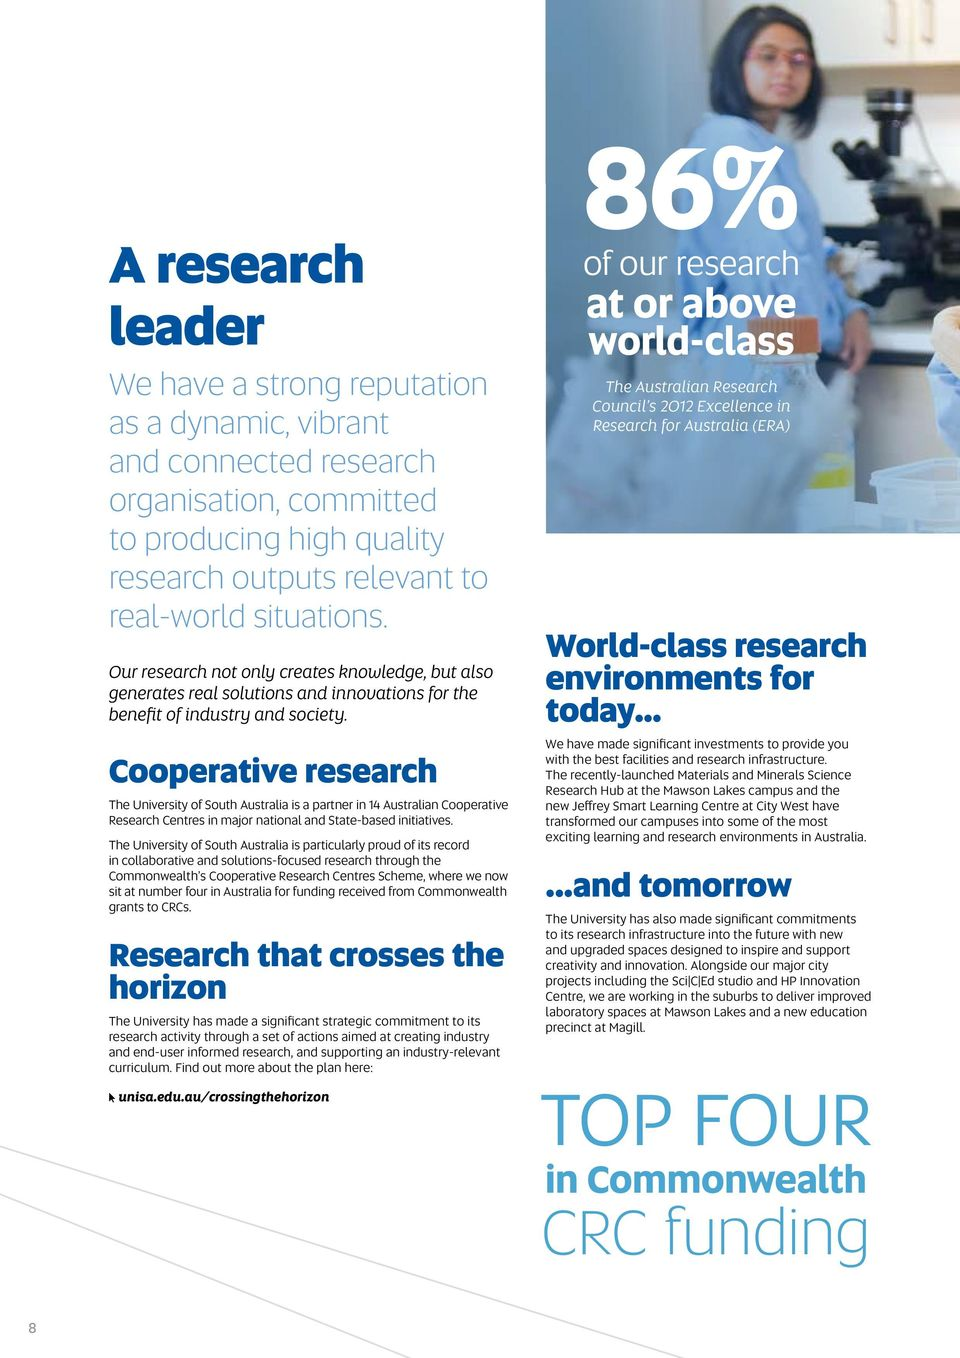 Cooperative research The University of South Australia is a partner in 14 Australian Cooperative Research Centres in major national and State-based initiatives.